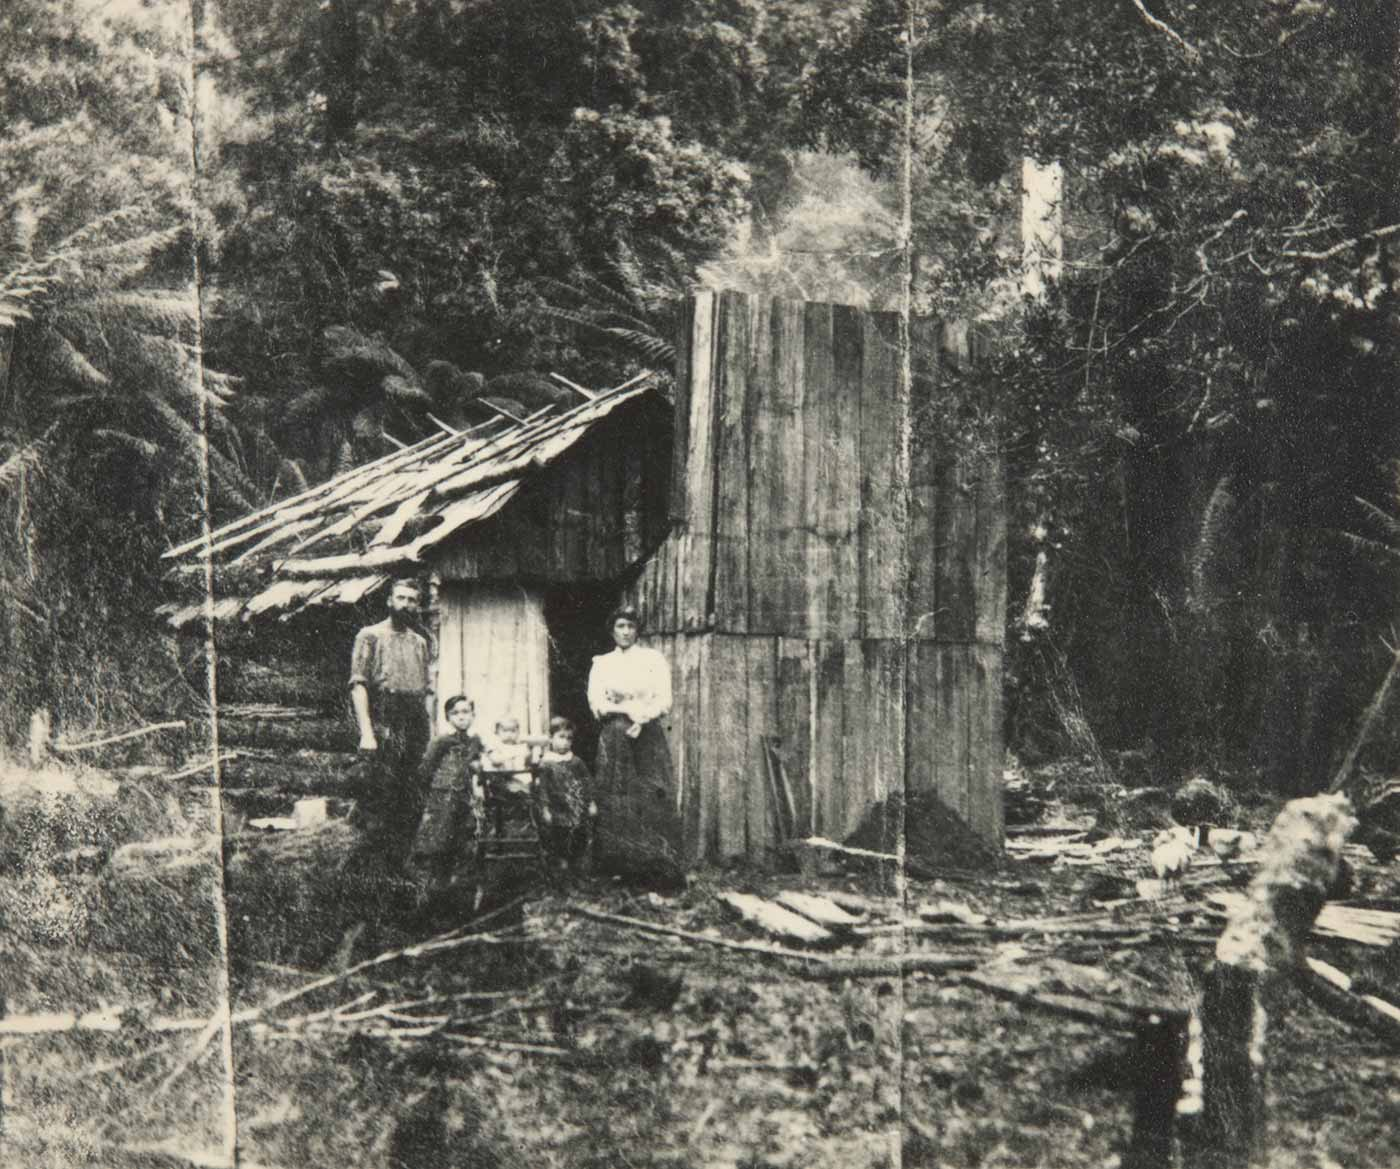 A black and white photograph showing a family standing in front of a small wooden log house. The family consists a man and a woman with two boys standing on either side of a baby in a high chair. The house is surrounded by dense bushland. - click to view larger image